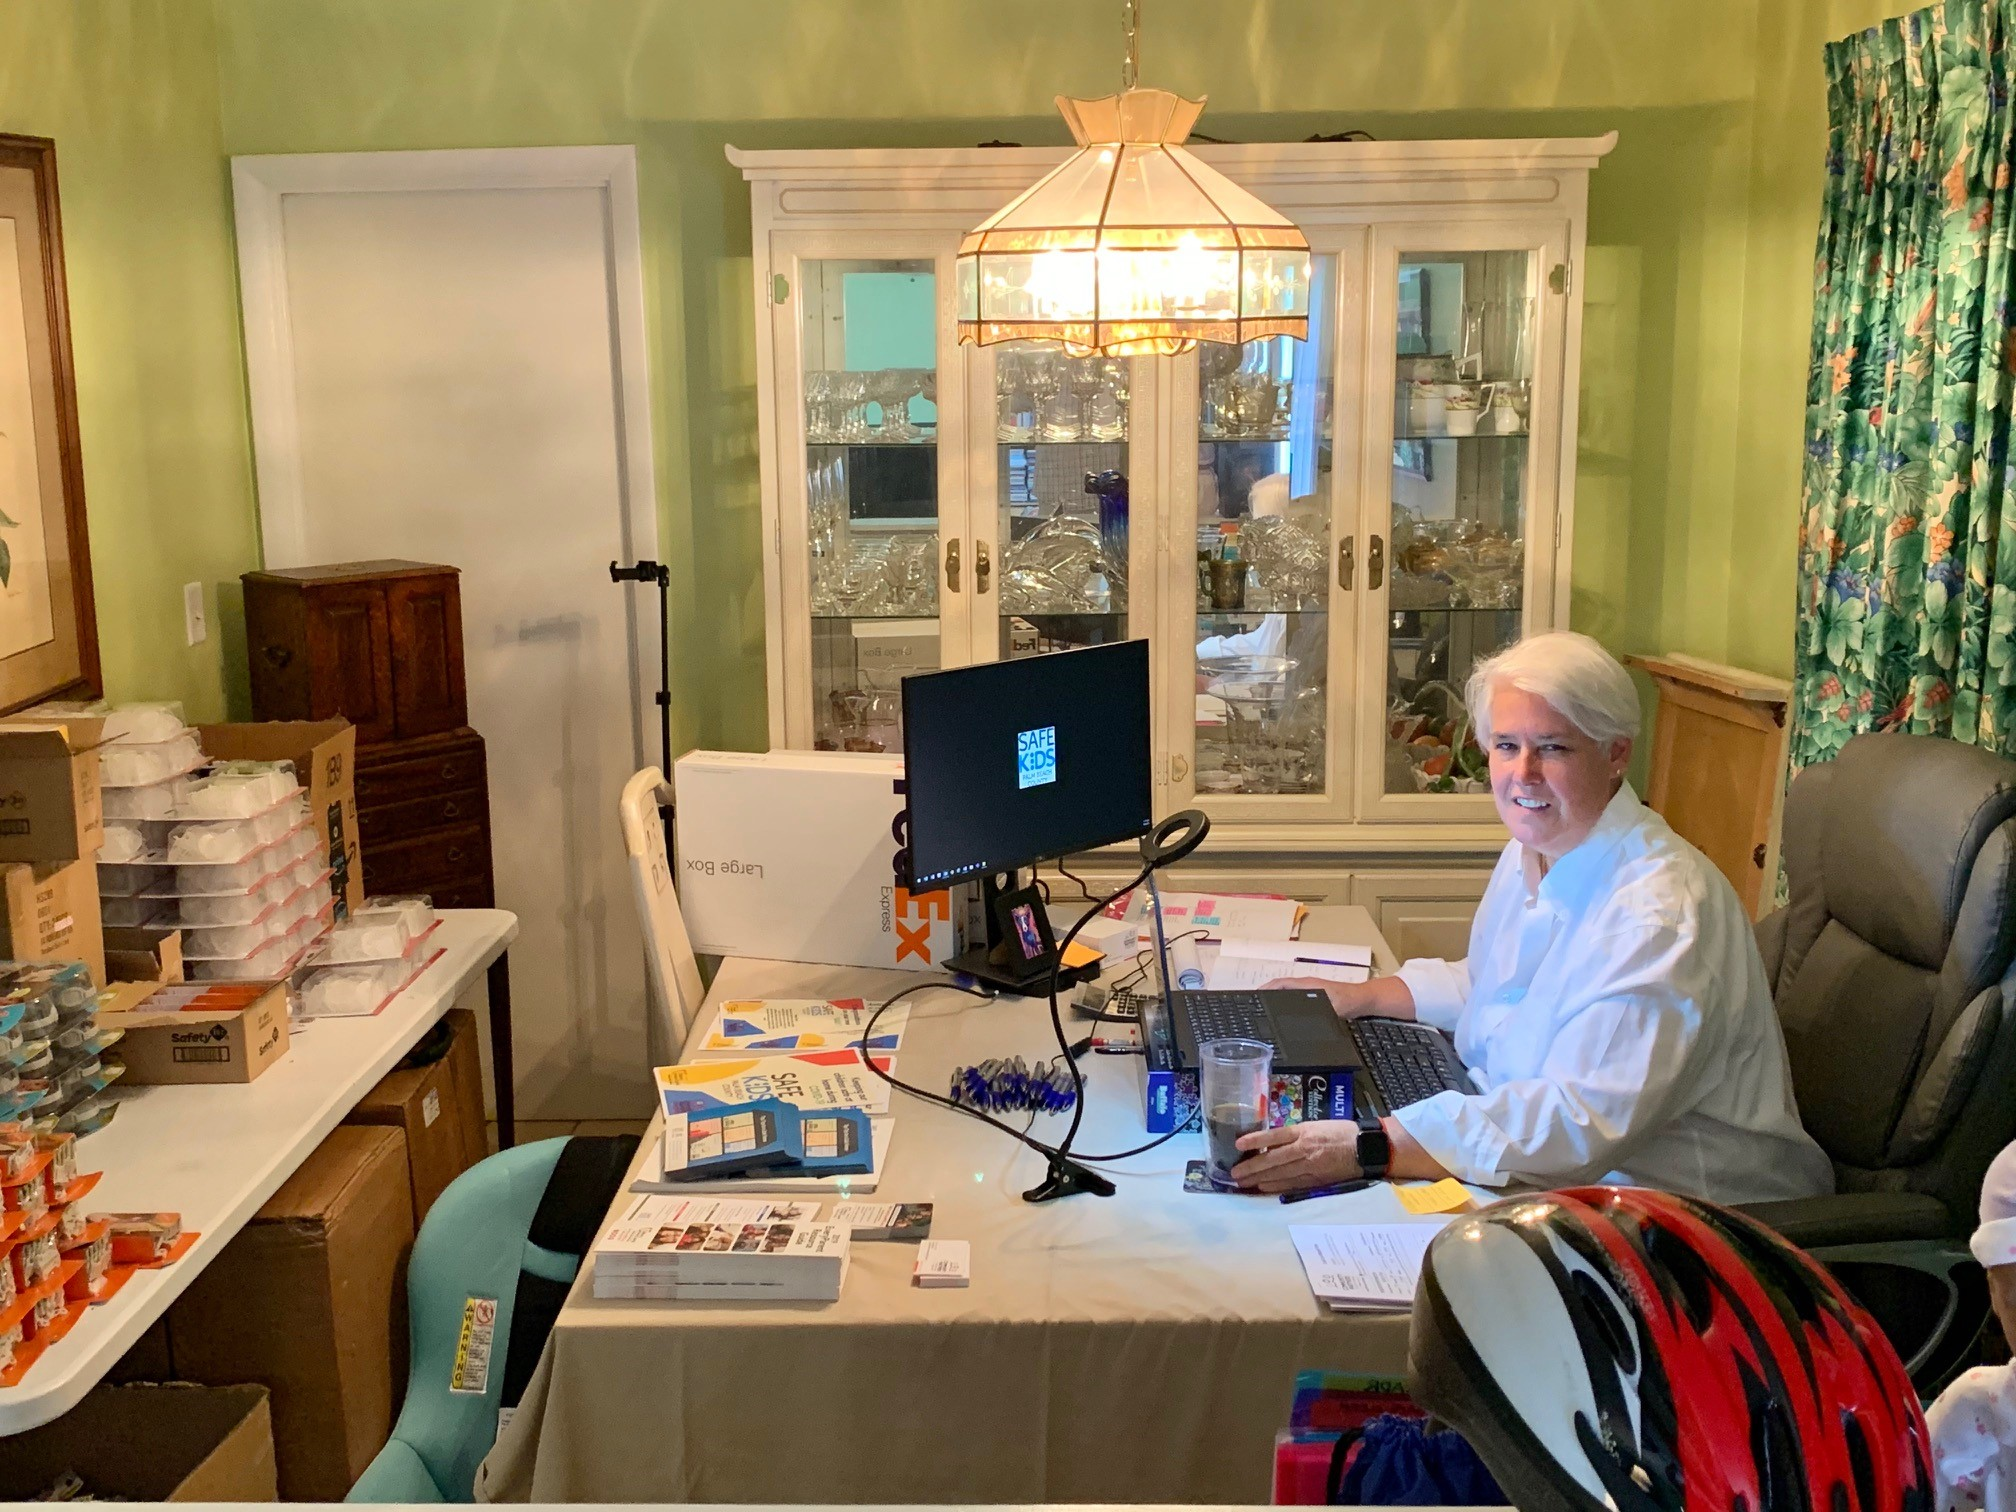 Kathy Wall at desk in home